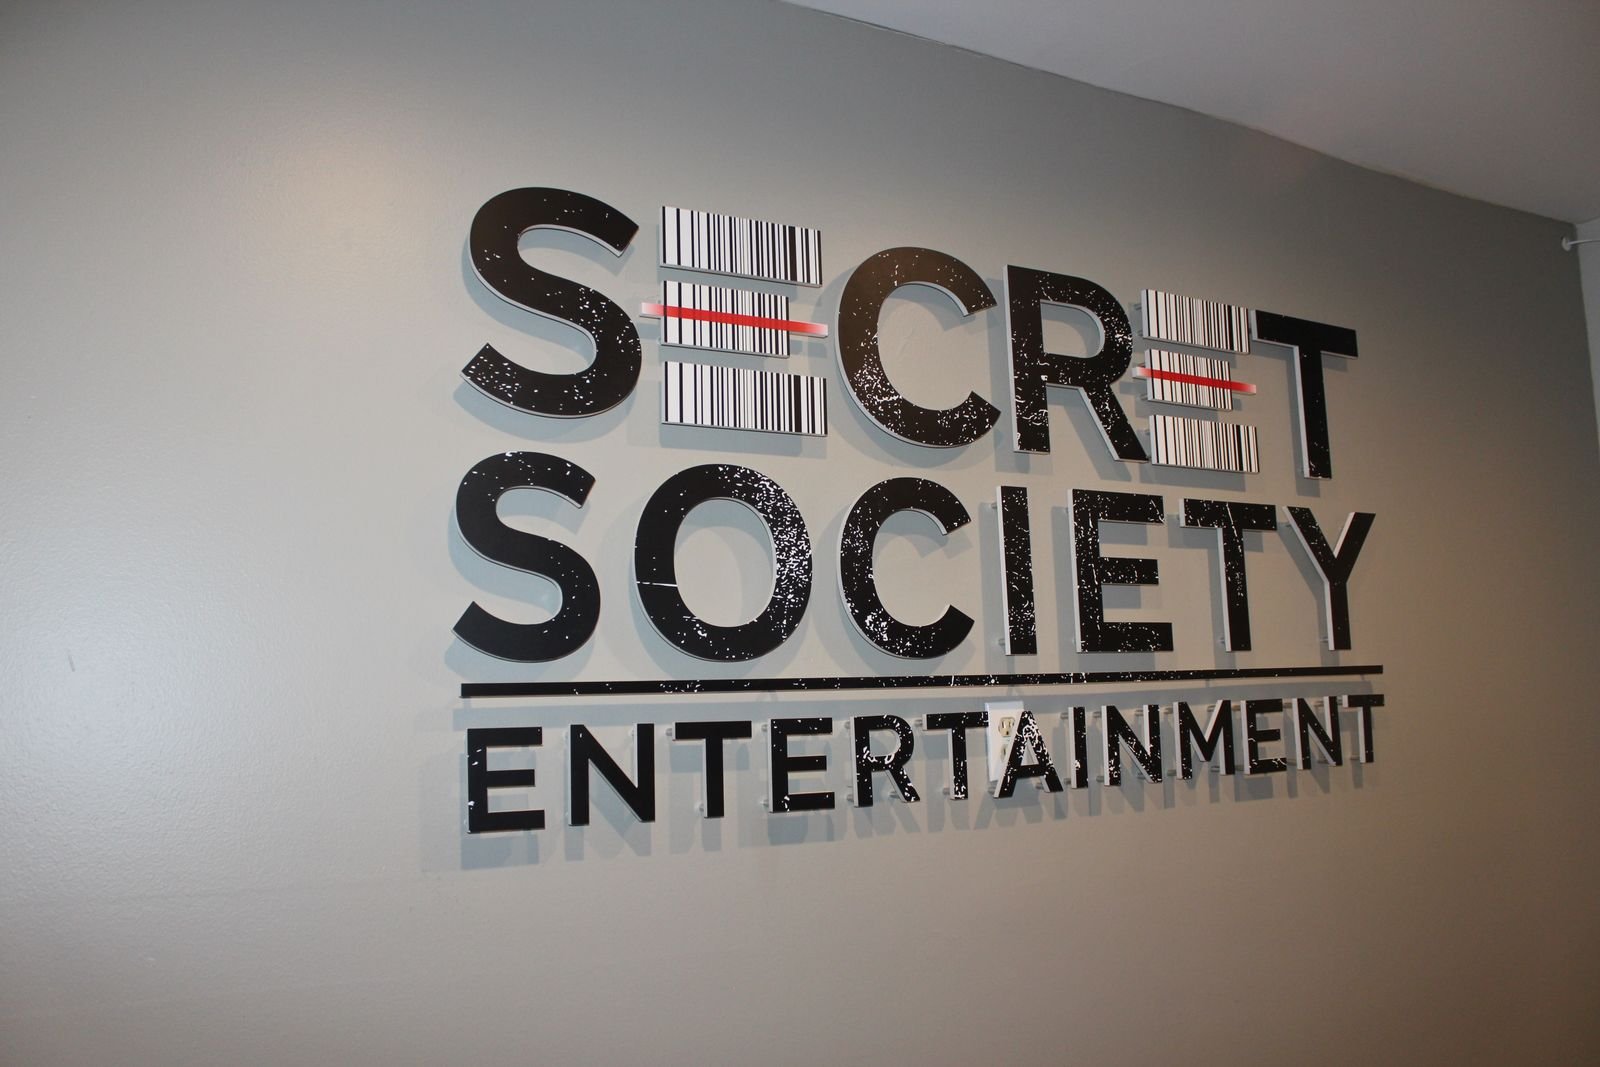 Secret Society Entertainment interior business sign with the company name made of acrylic for company branding indoors